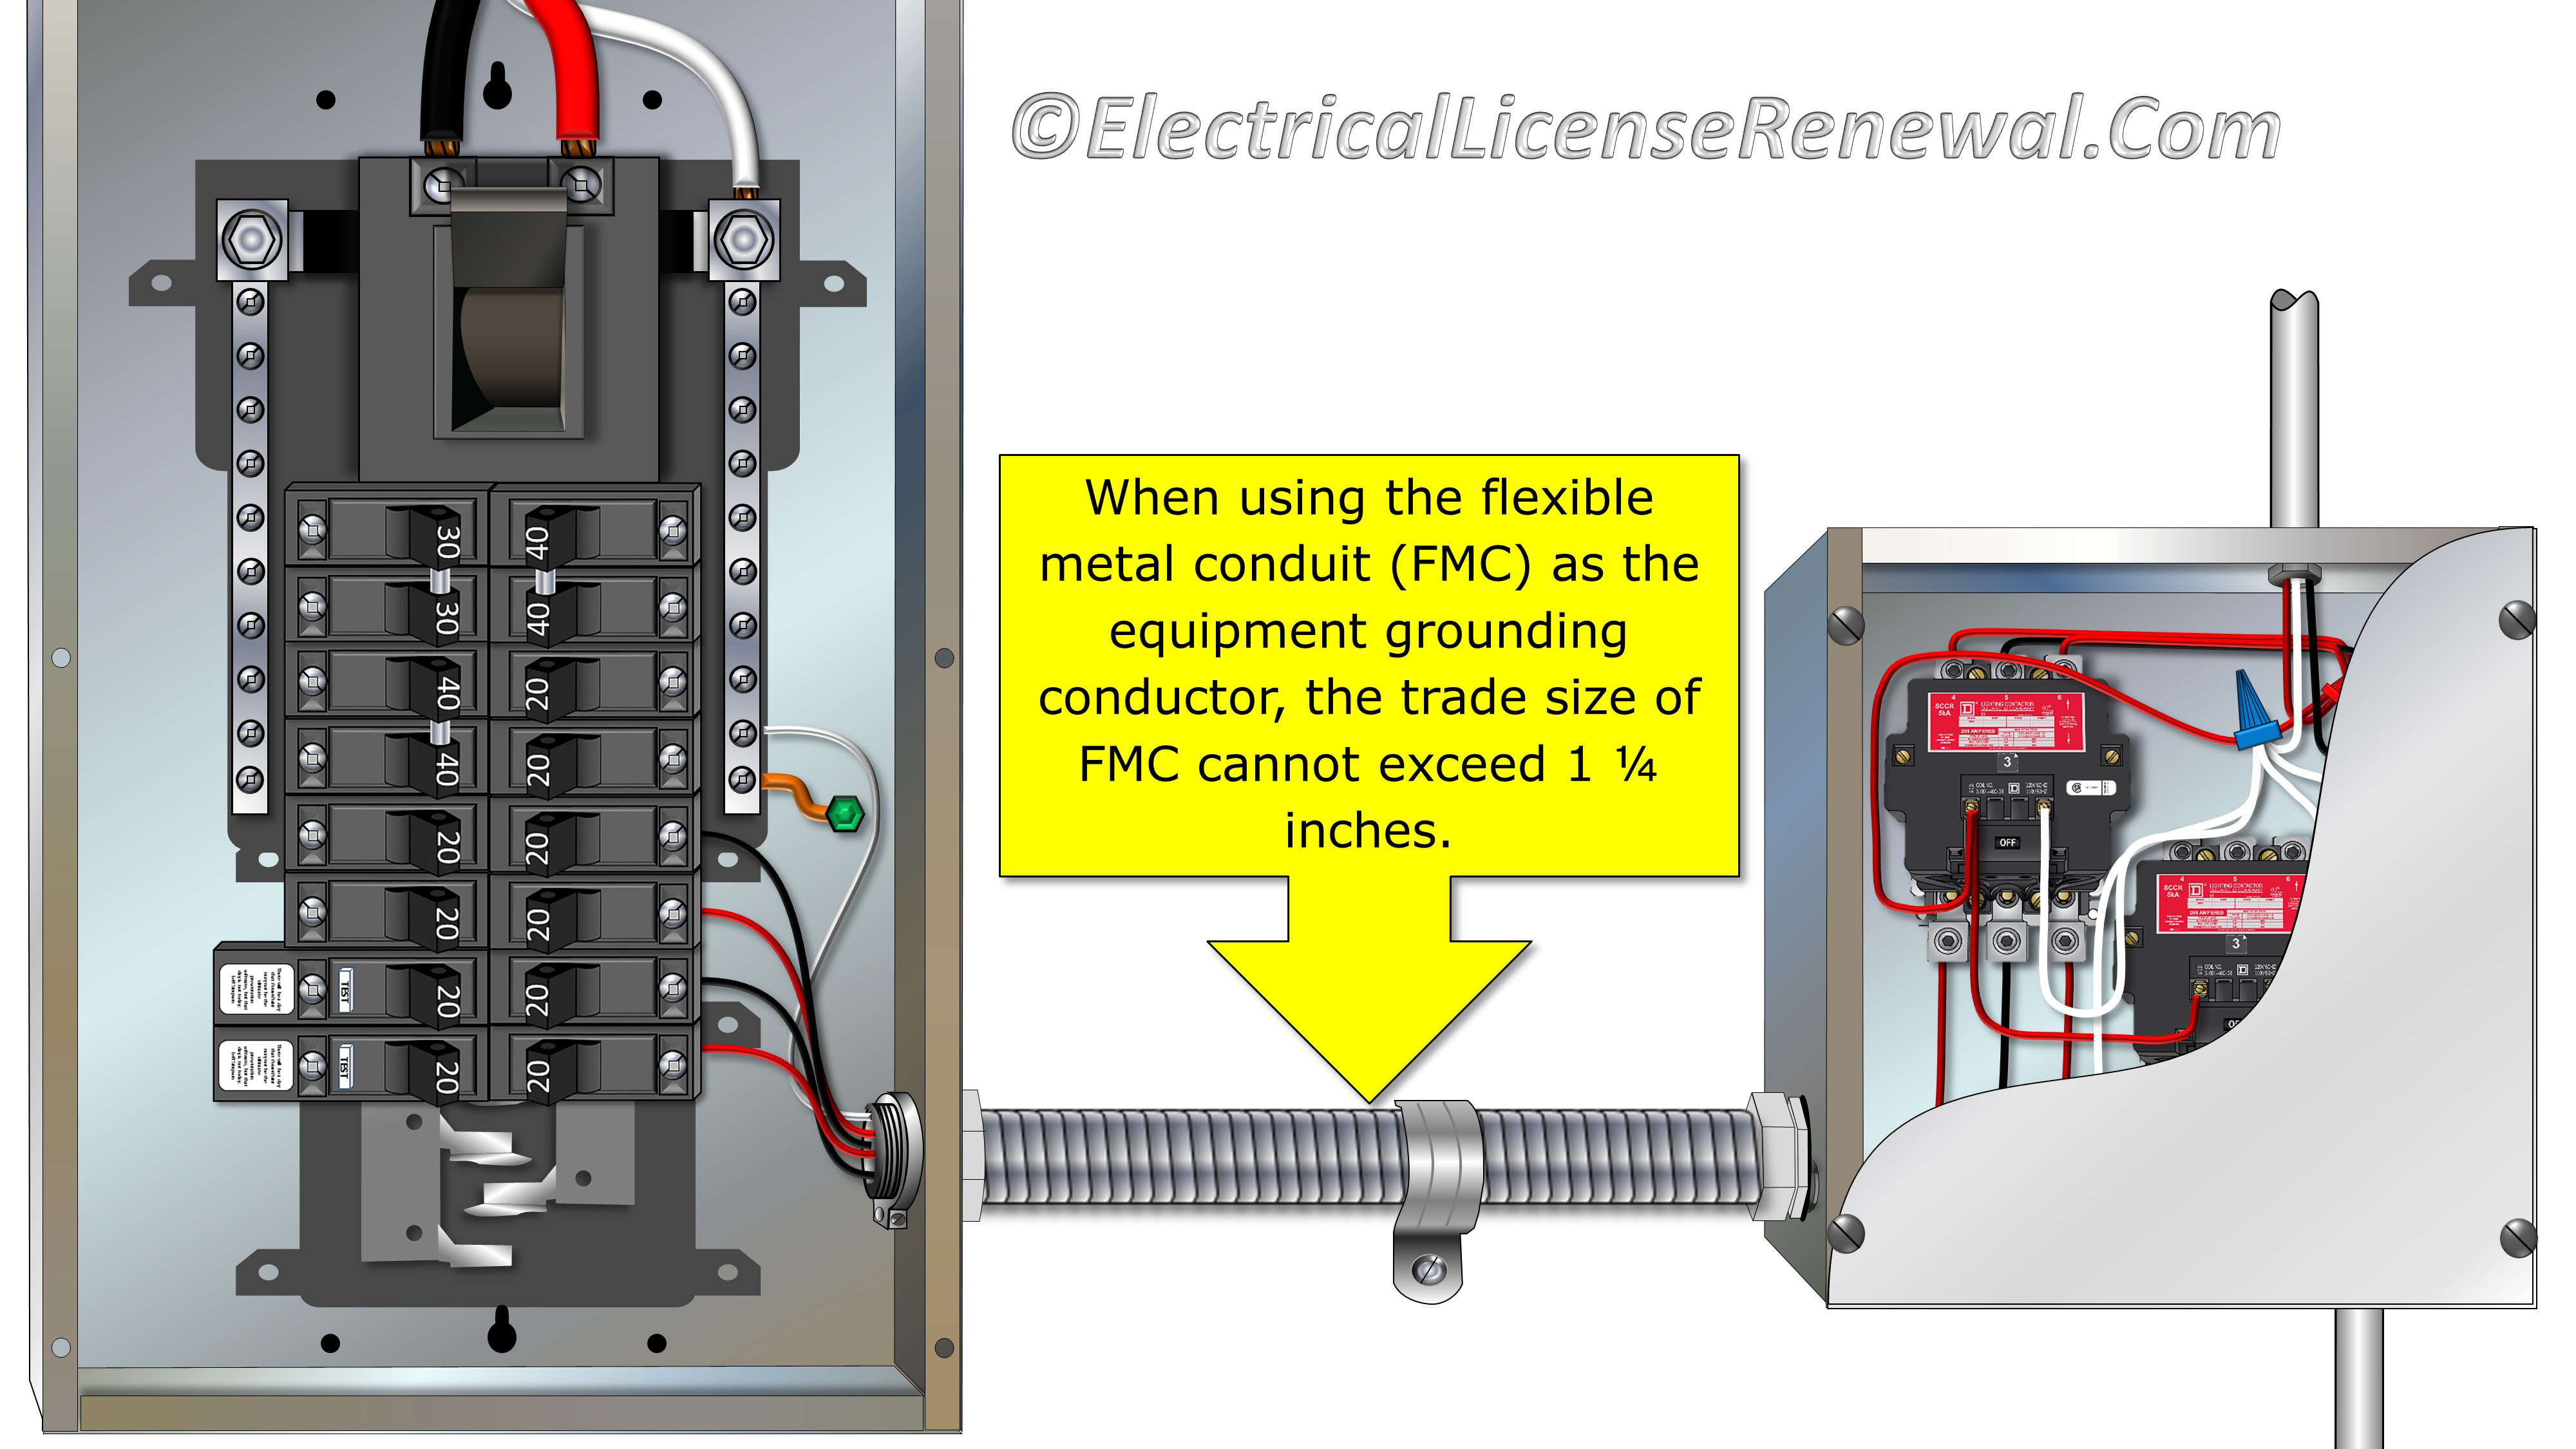 Types Of Electrical Test Equipment : C types of equipment grounding conductors